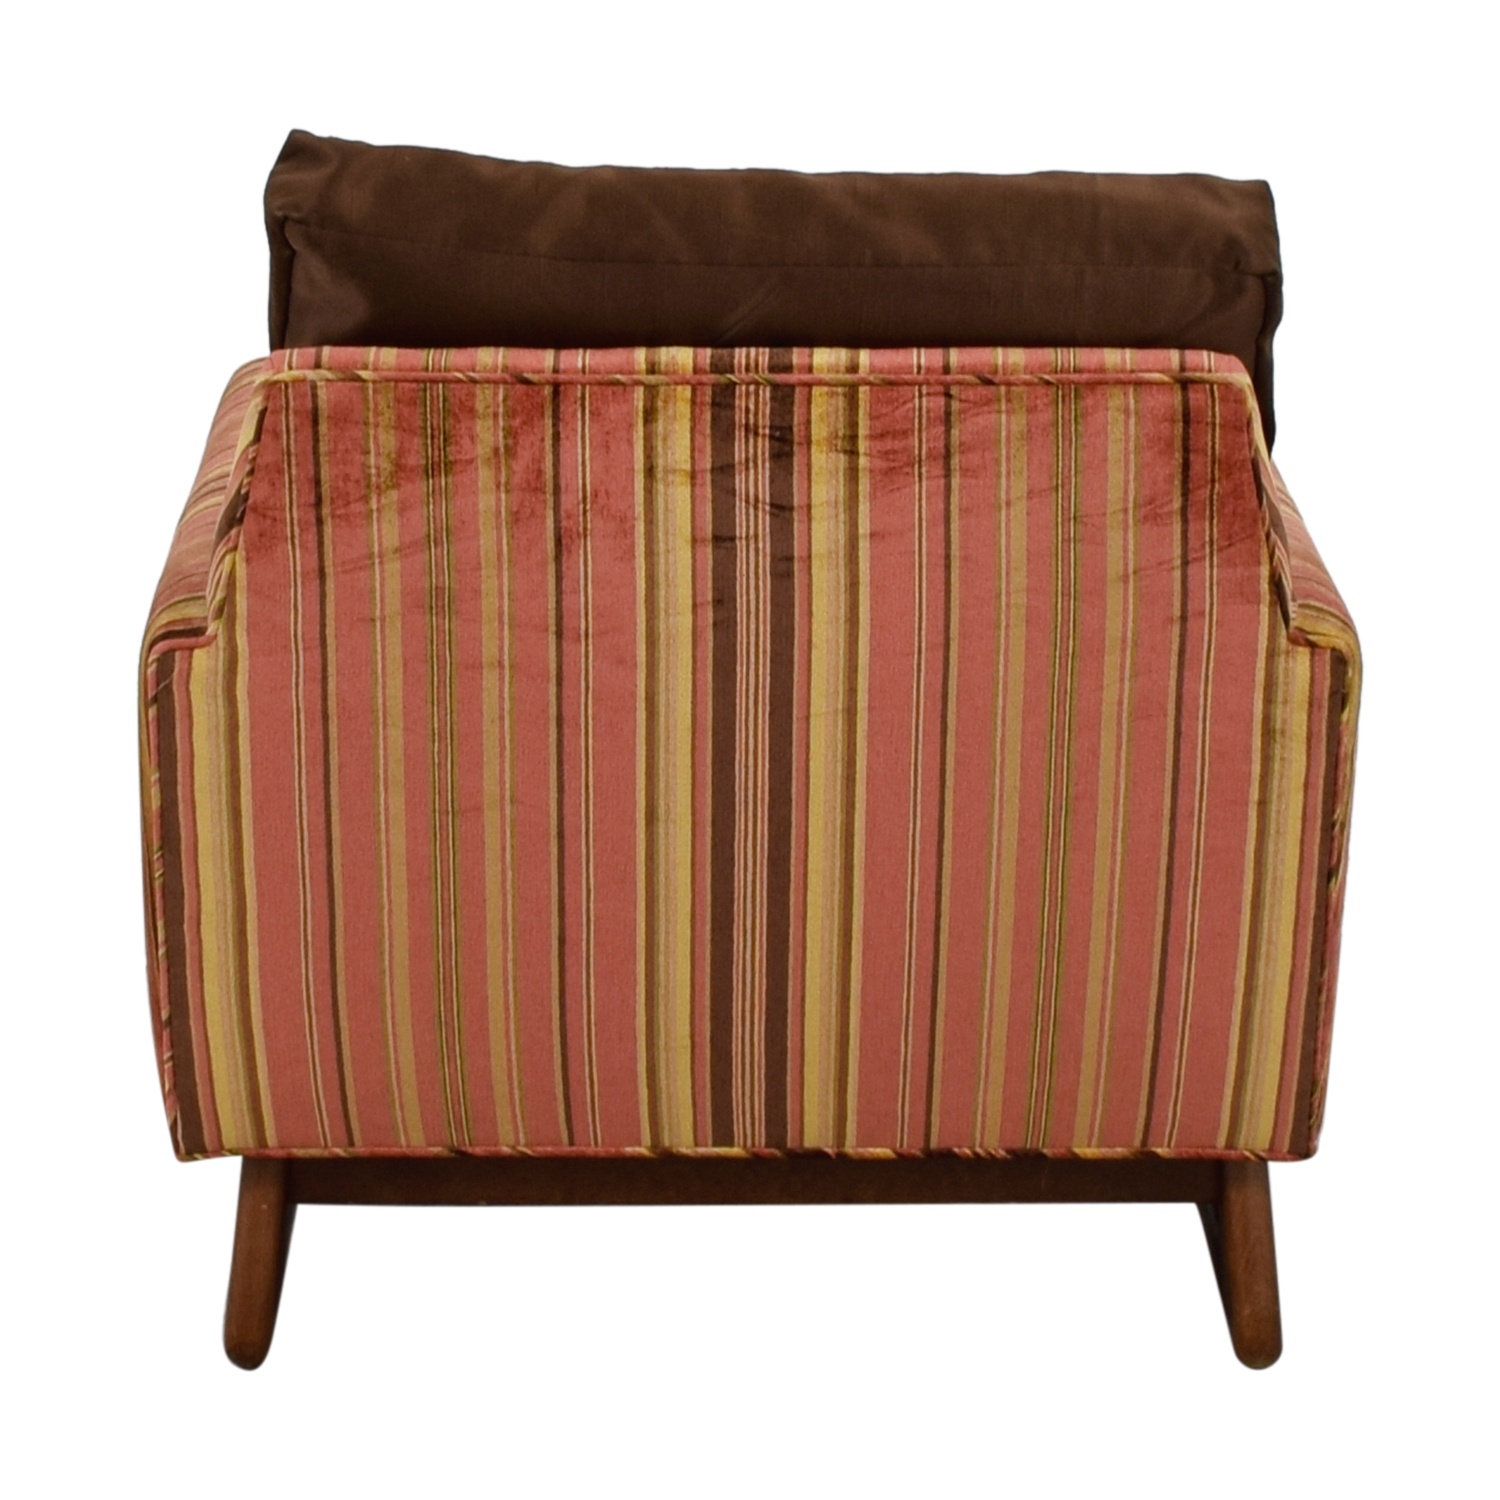 Adrian Pearsall Red and Yellow Striped Accent Chair / Chairs